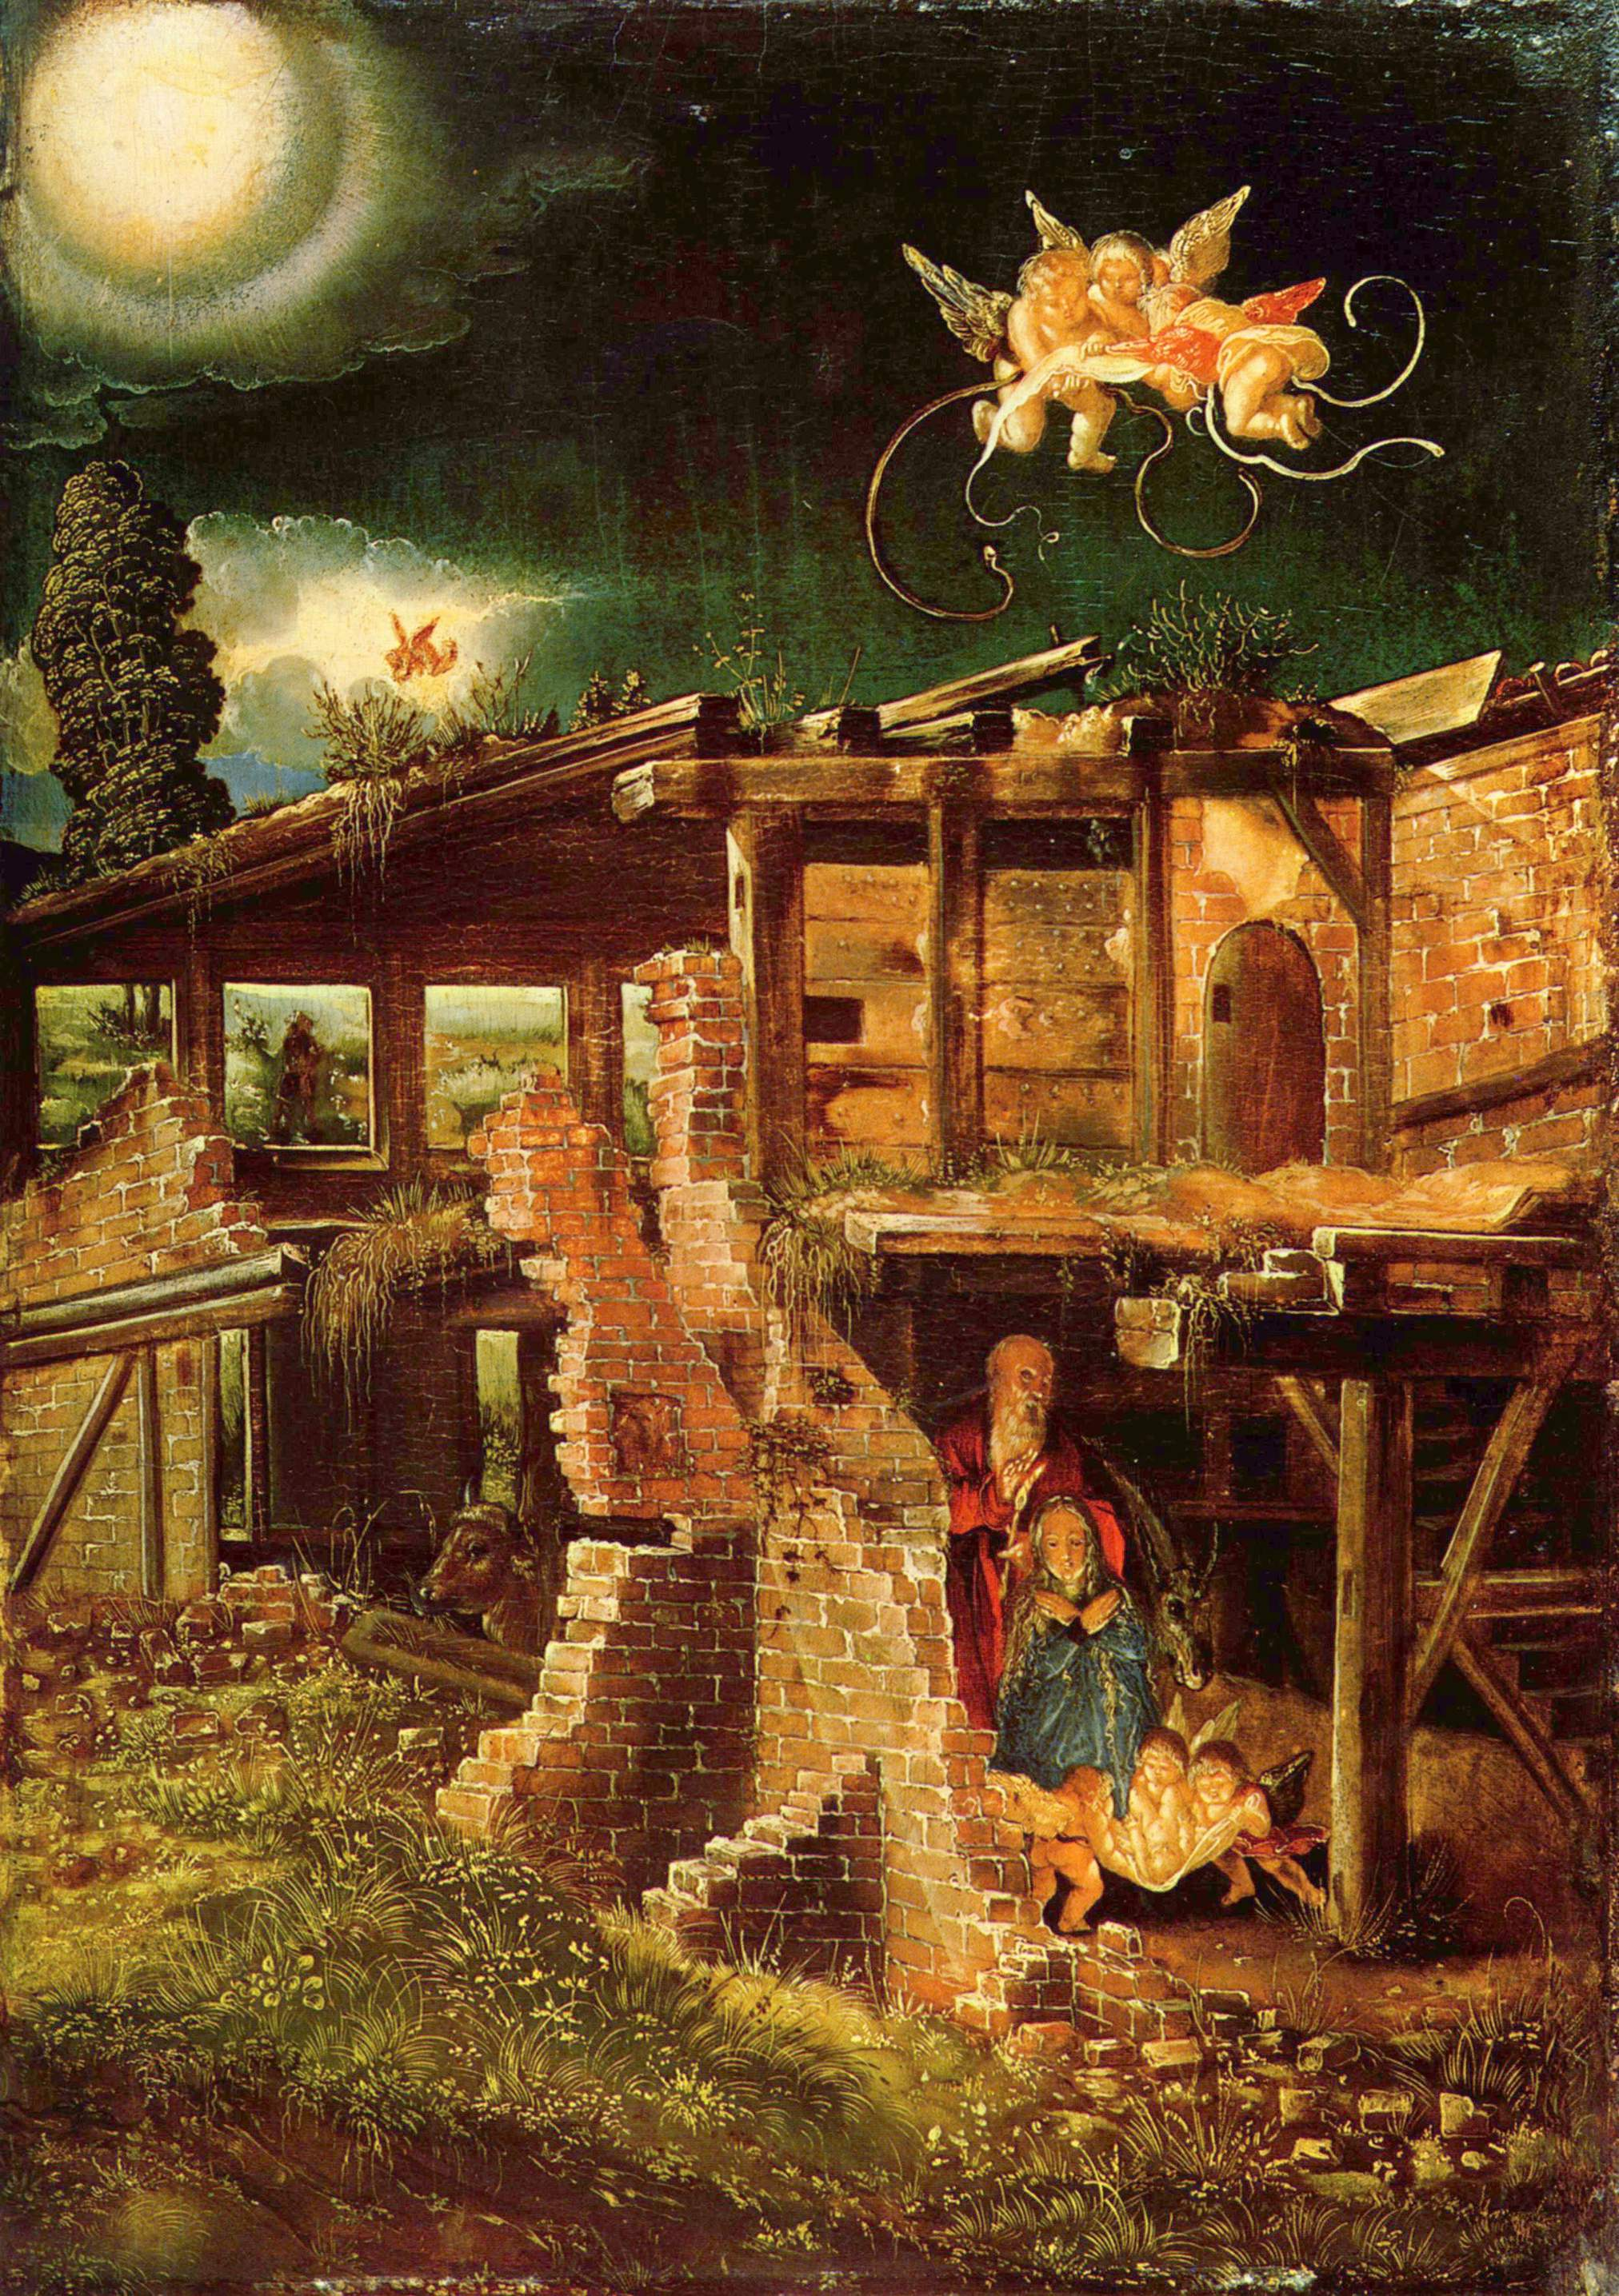 Altodorfer Nativity painted in 1511